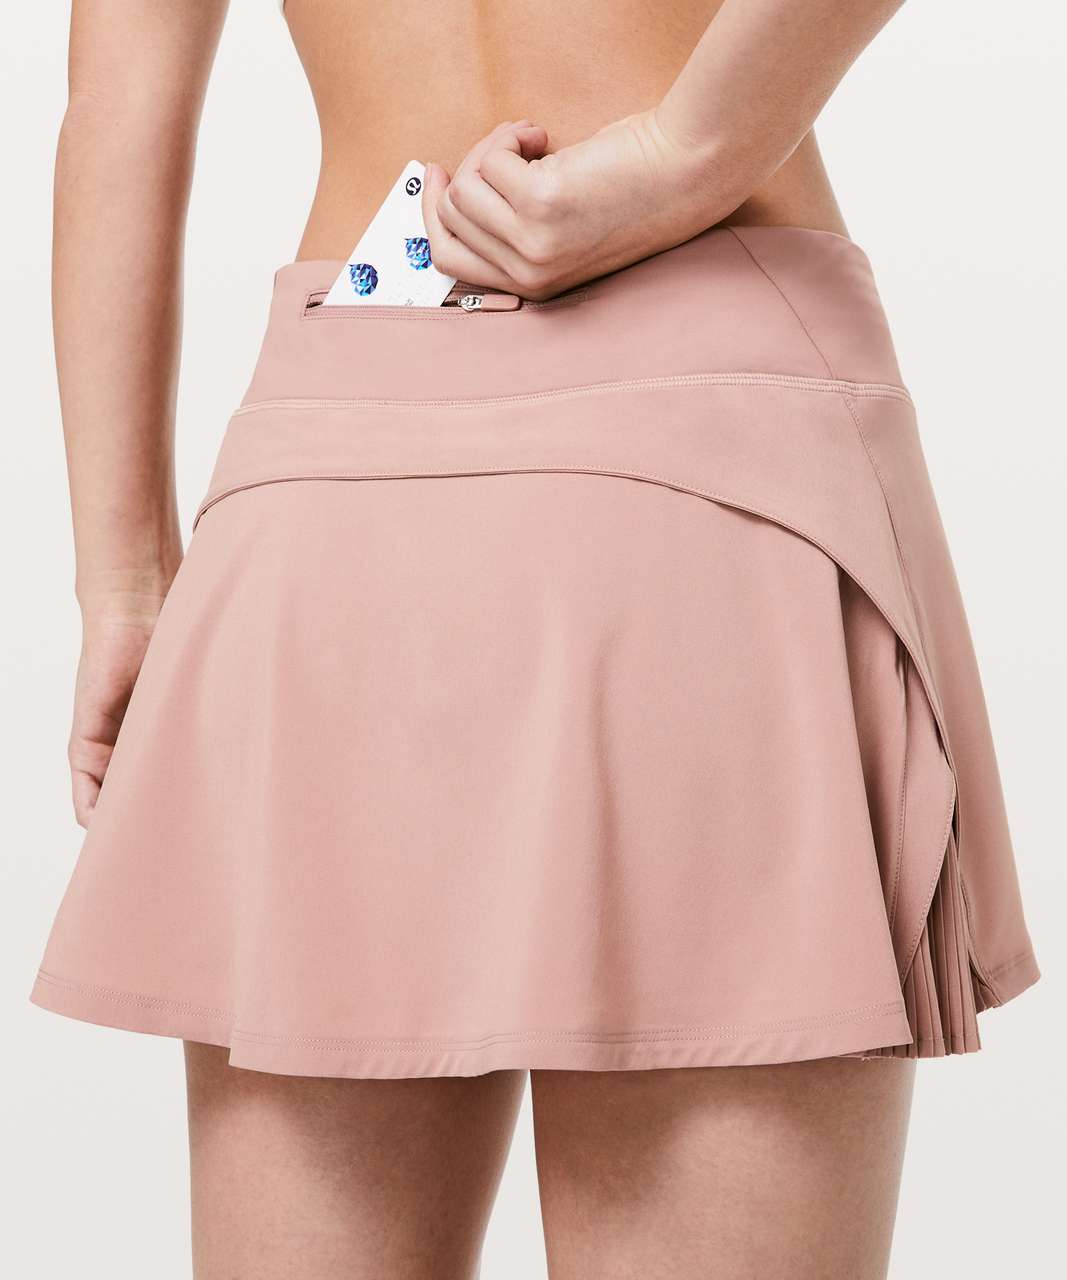 "Lululemon Play Off The Pleats Skirt *13"" - Copper Coil"